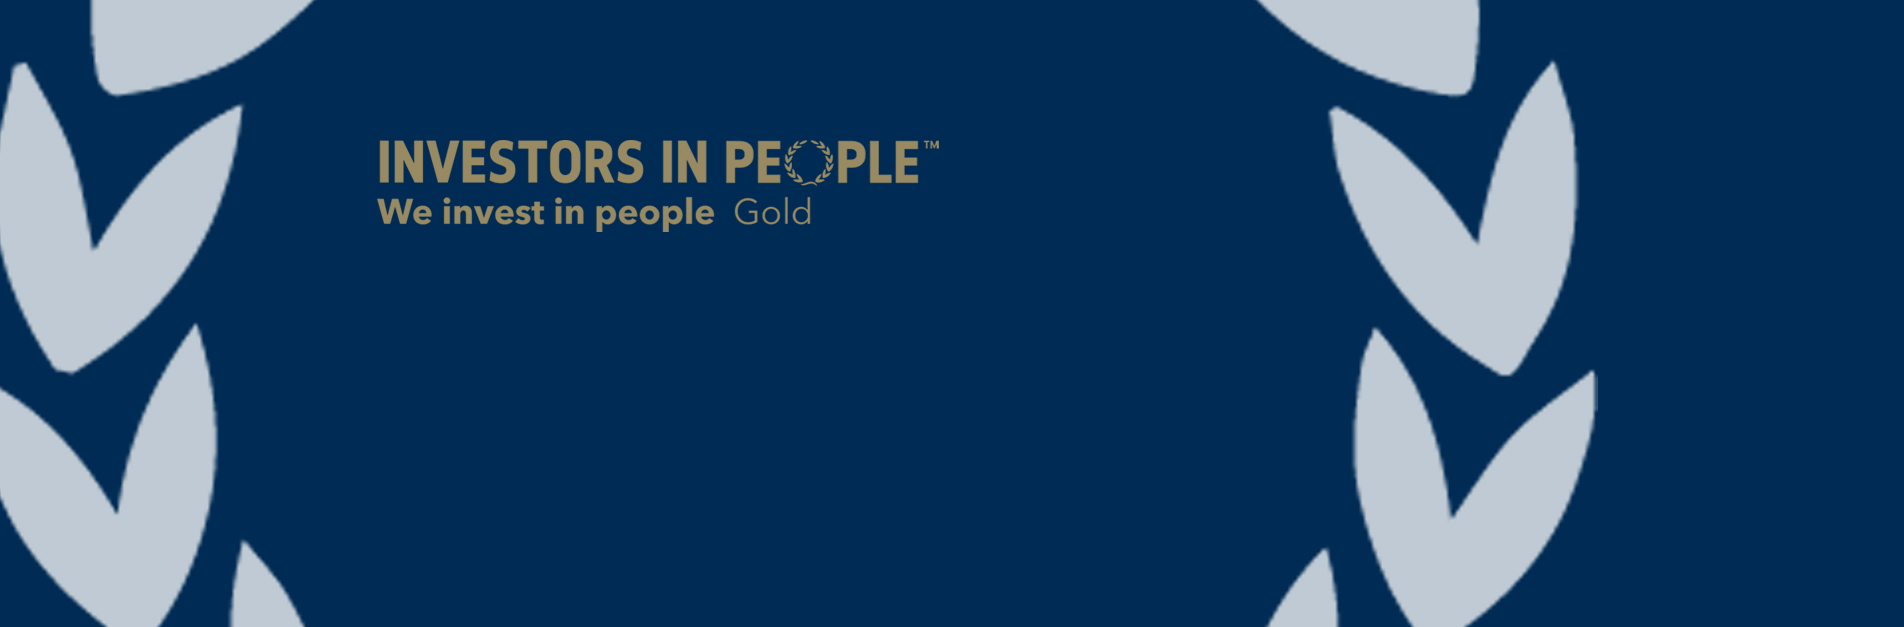 First Balfour Investors in People Gold